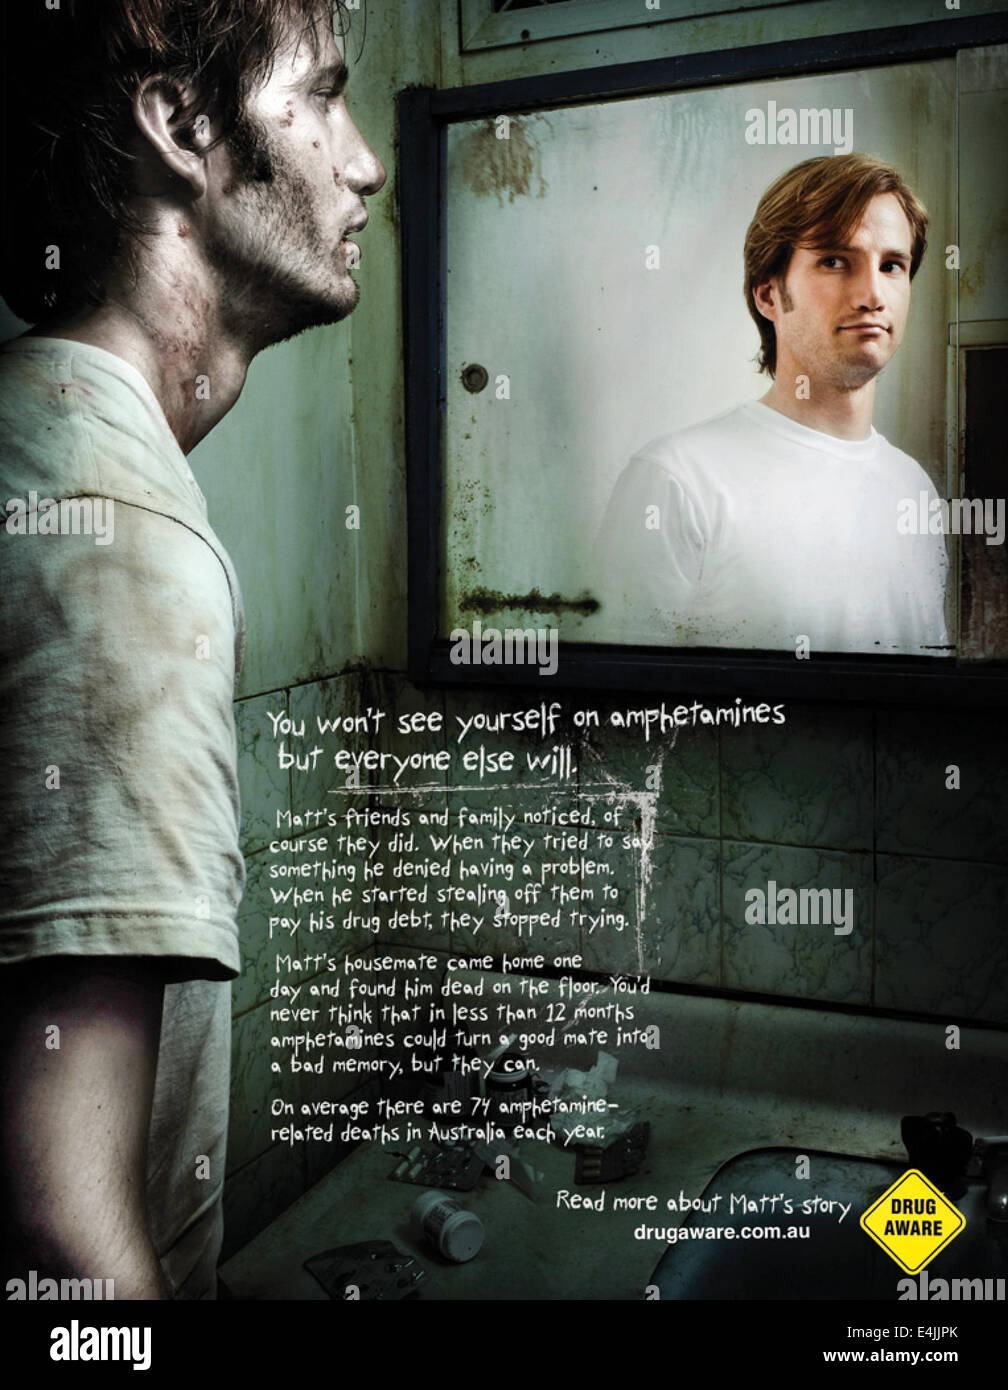 'Amphetamines turn you into something you can't see for yourself' Campaign, Australia 2012. Print advertisement. - Stock Image